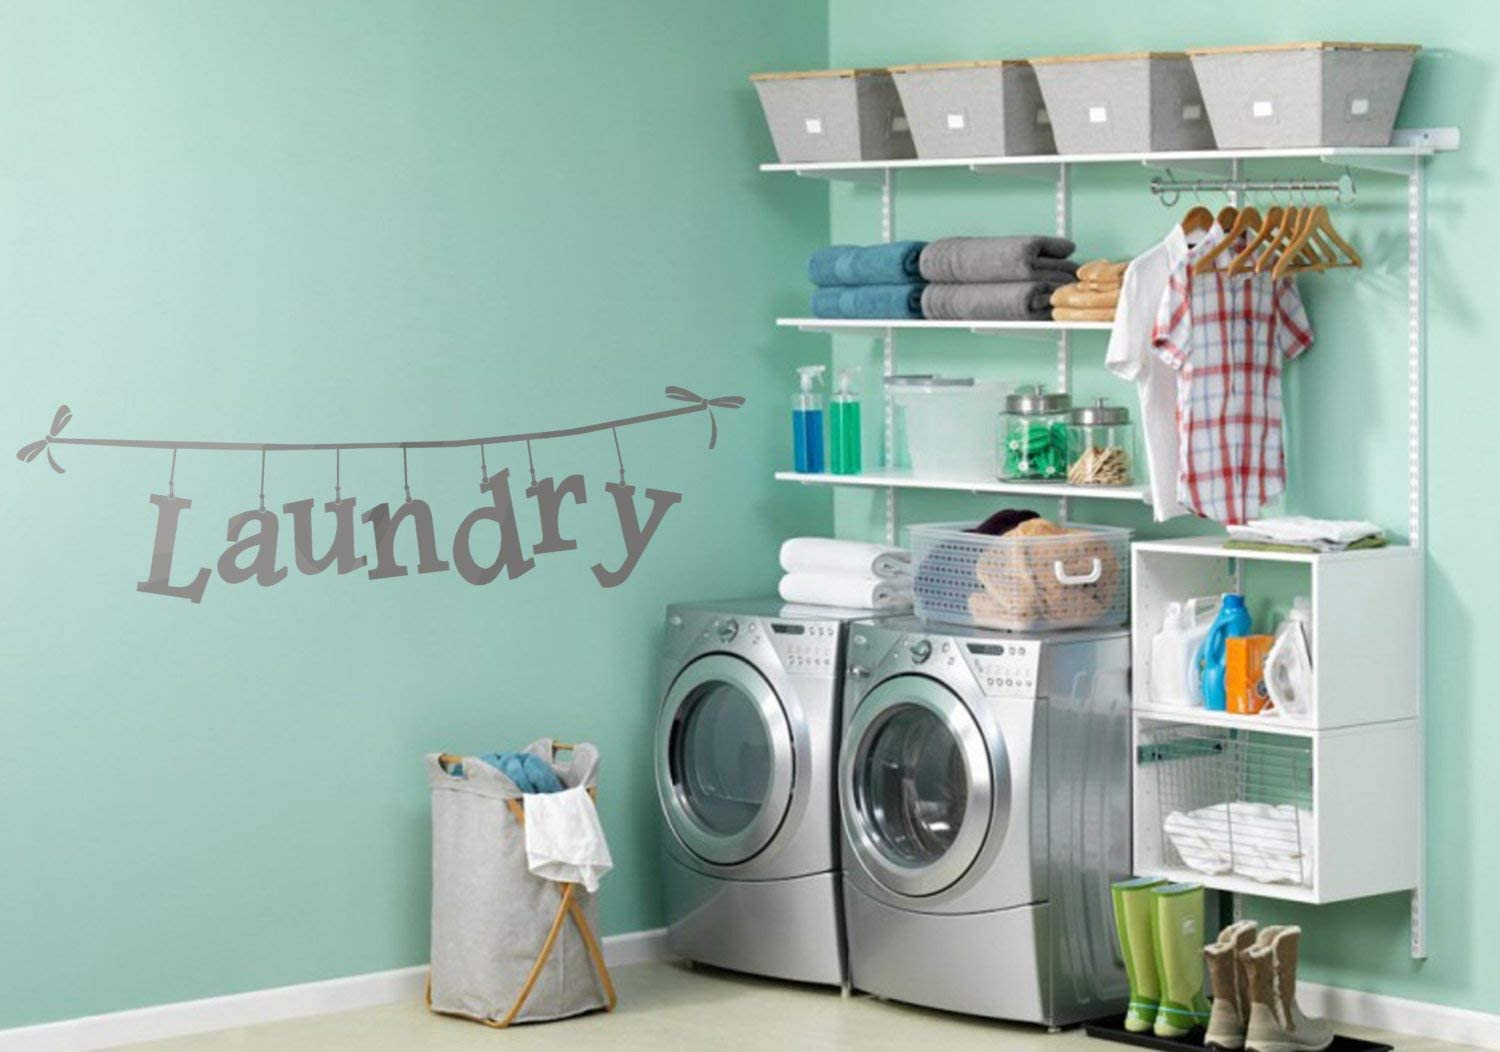 Amazon Com Diuangfoong Laundry Room Decor Laundry Room Wall Decals Laundry Room Wall Decor Clothesline Laundry Laundry Signs Laundry Room Signs Decals Home Kitchen